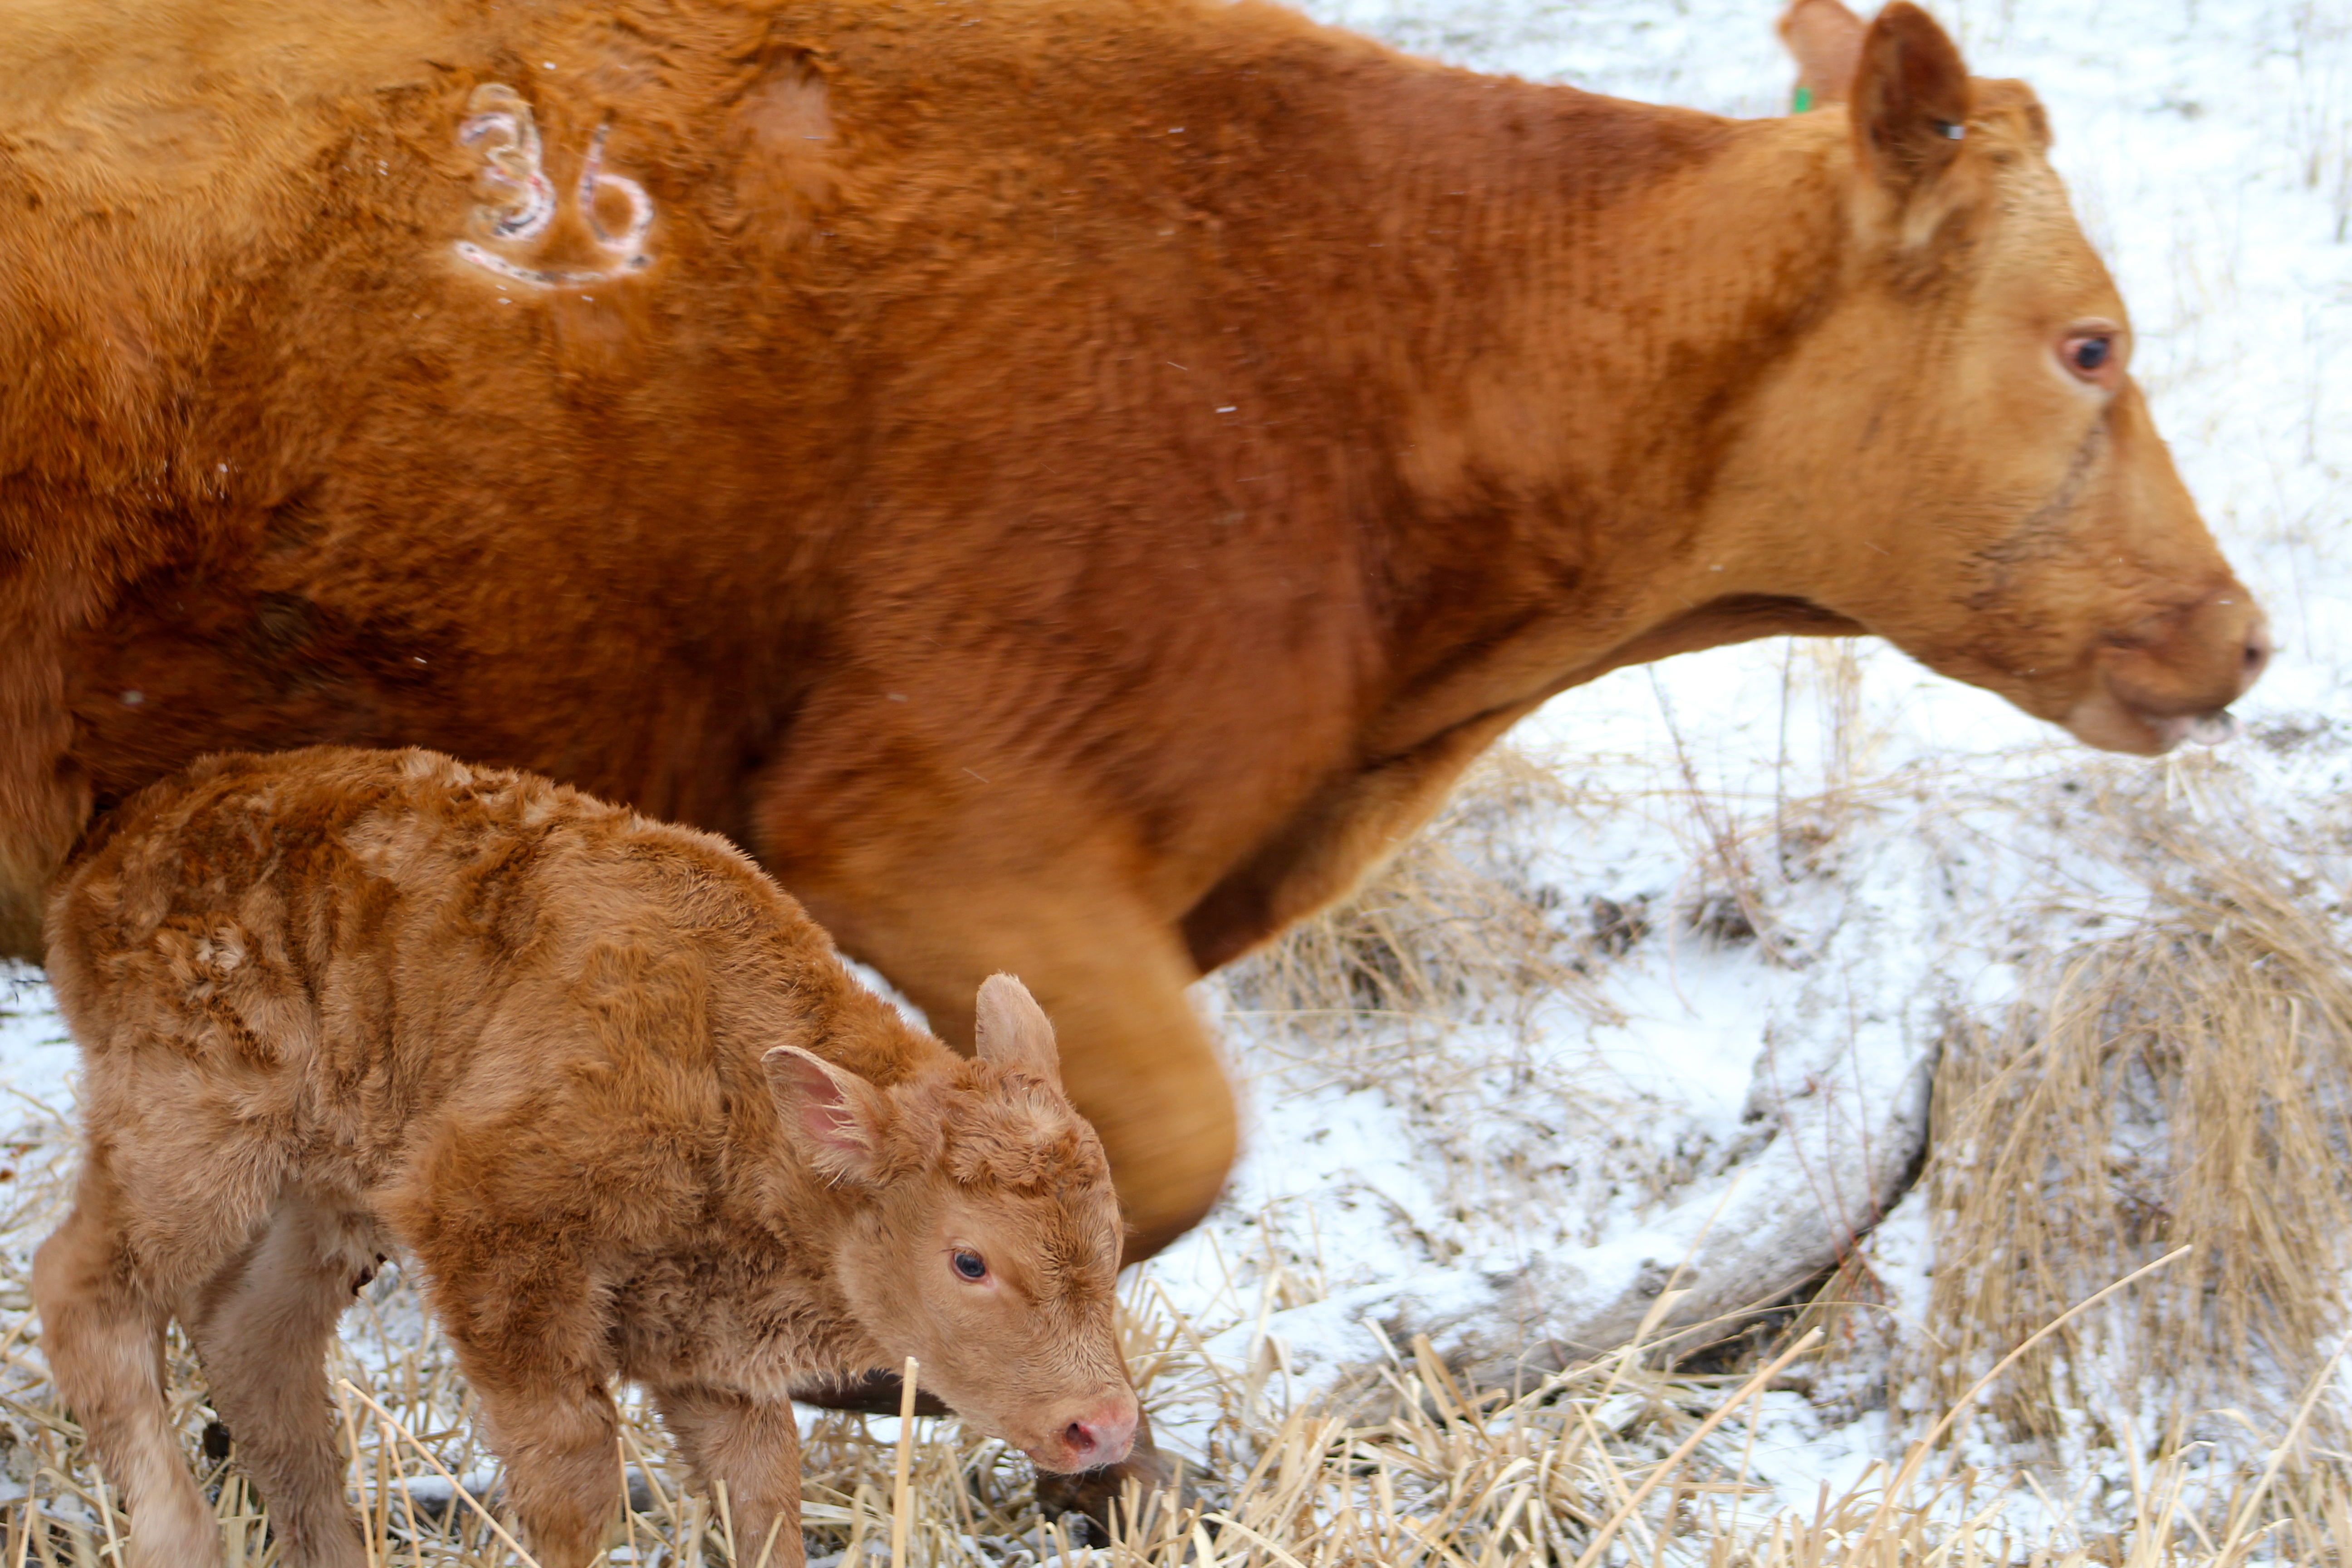 Brown baby cows - photo#8